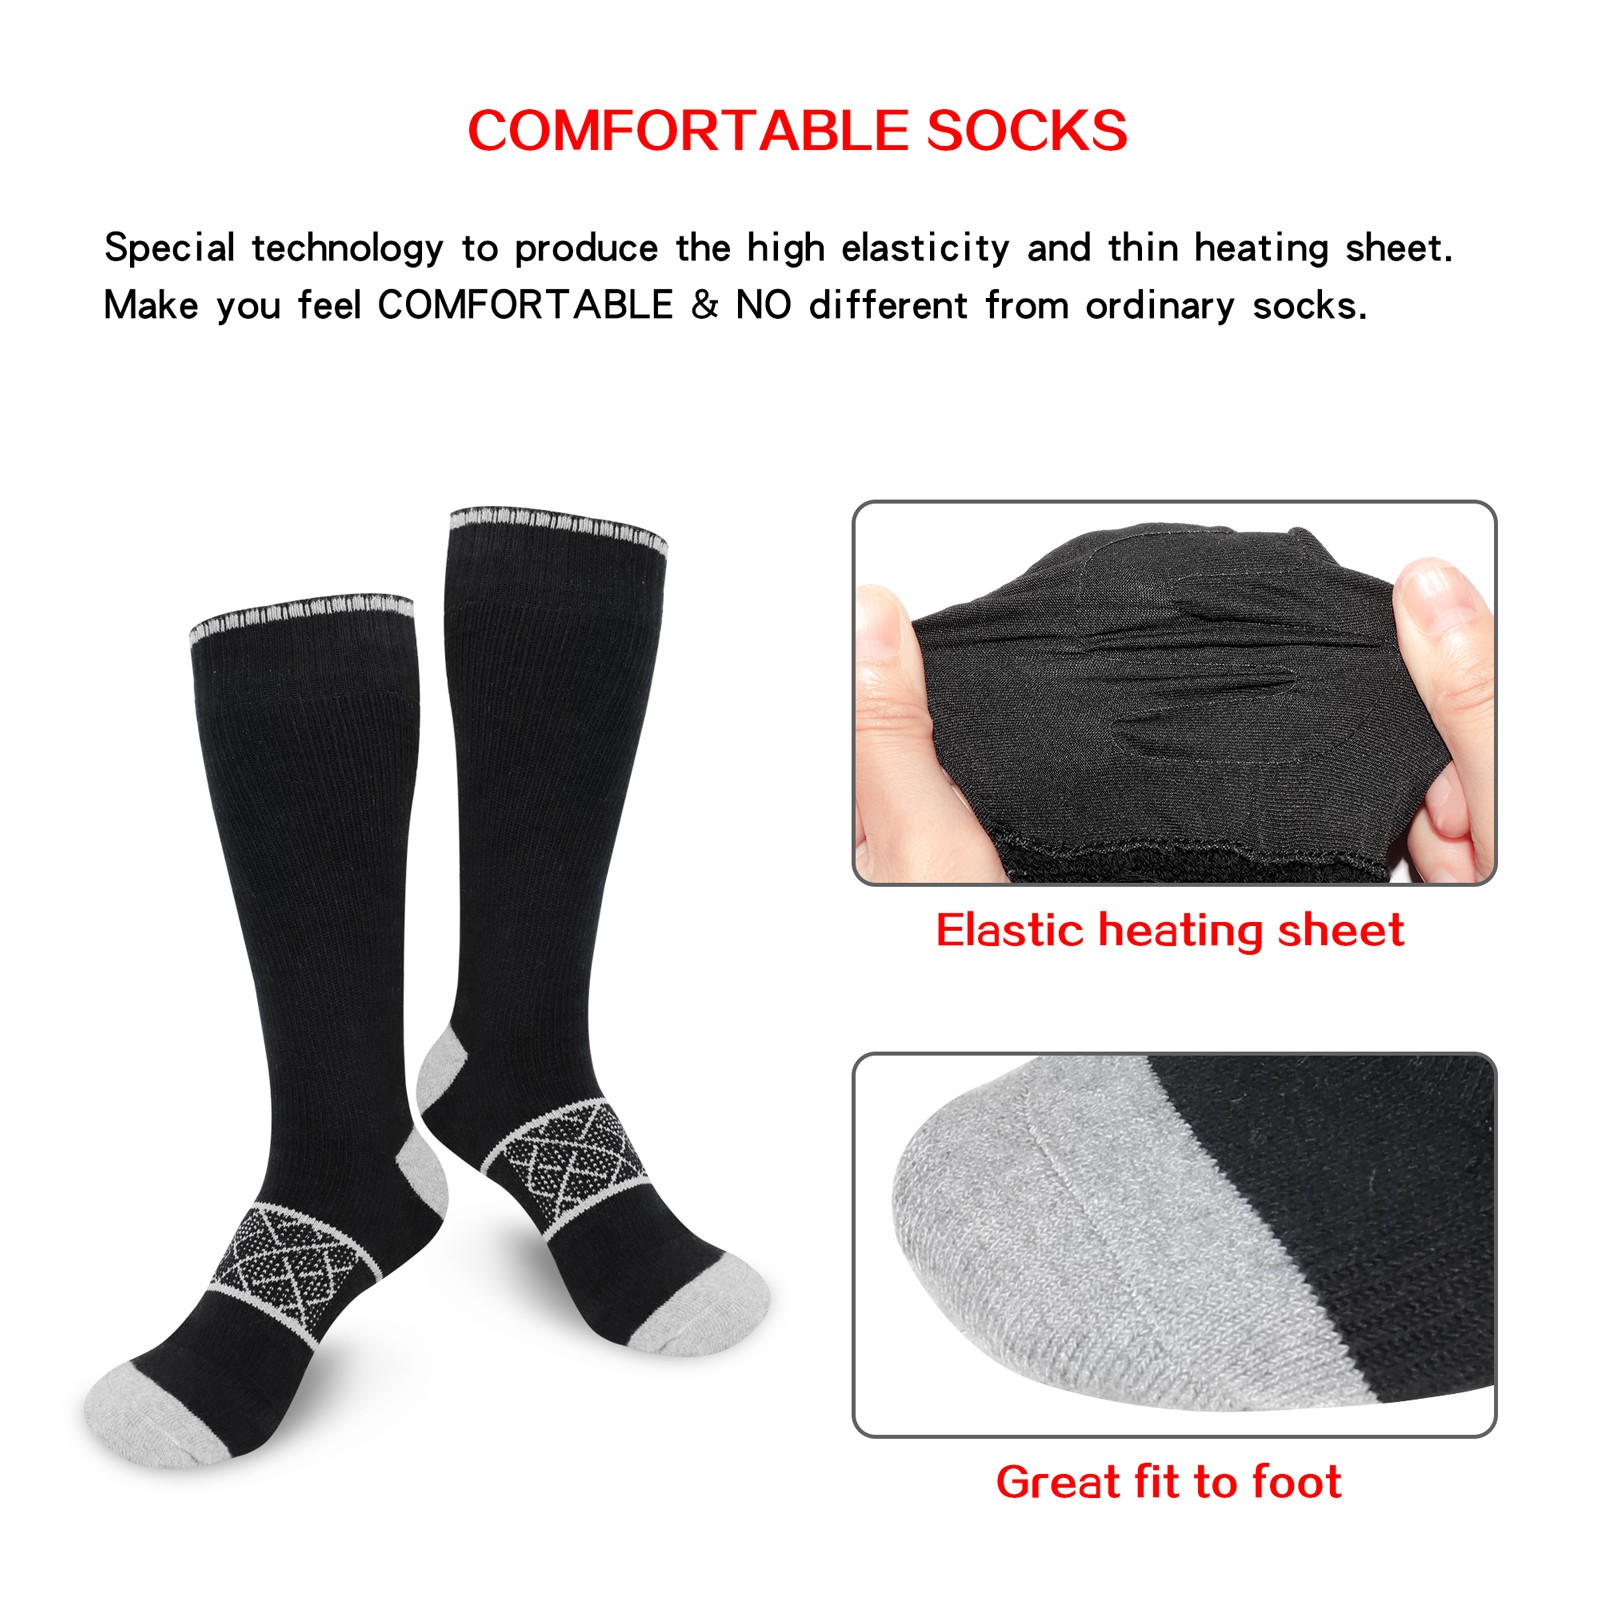 Dr. Warm cotton battery operated warming socks with smart design for home-12